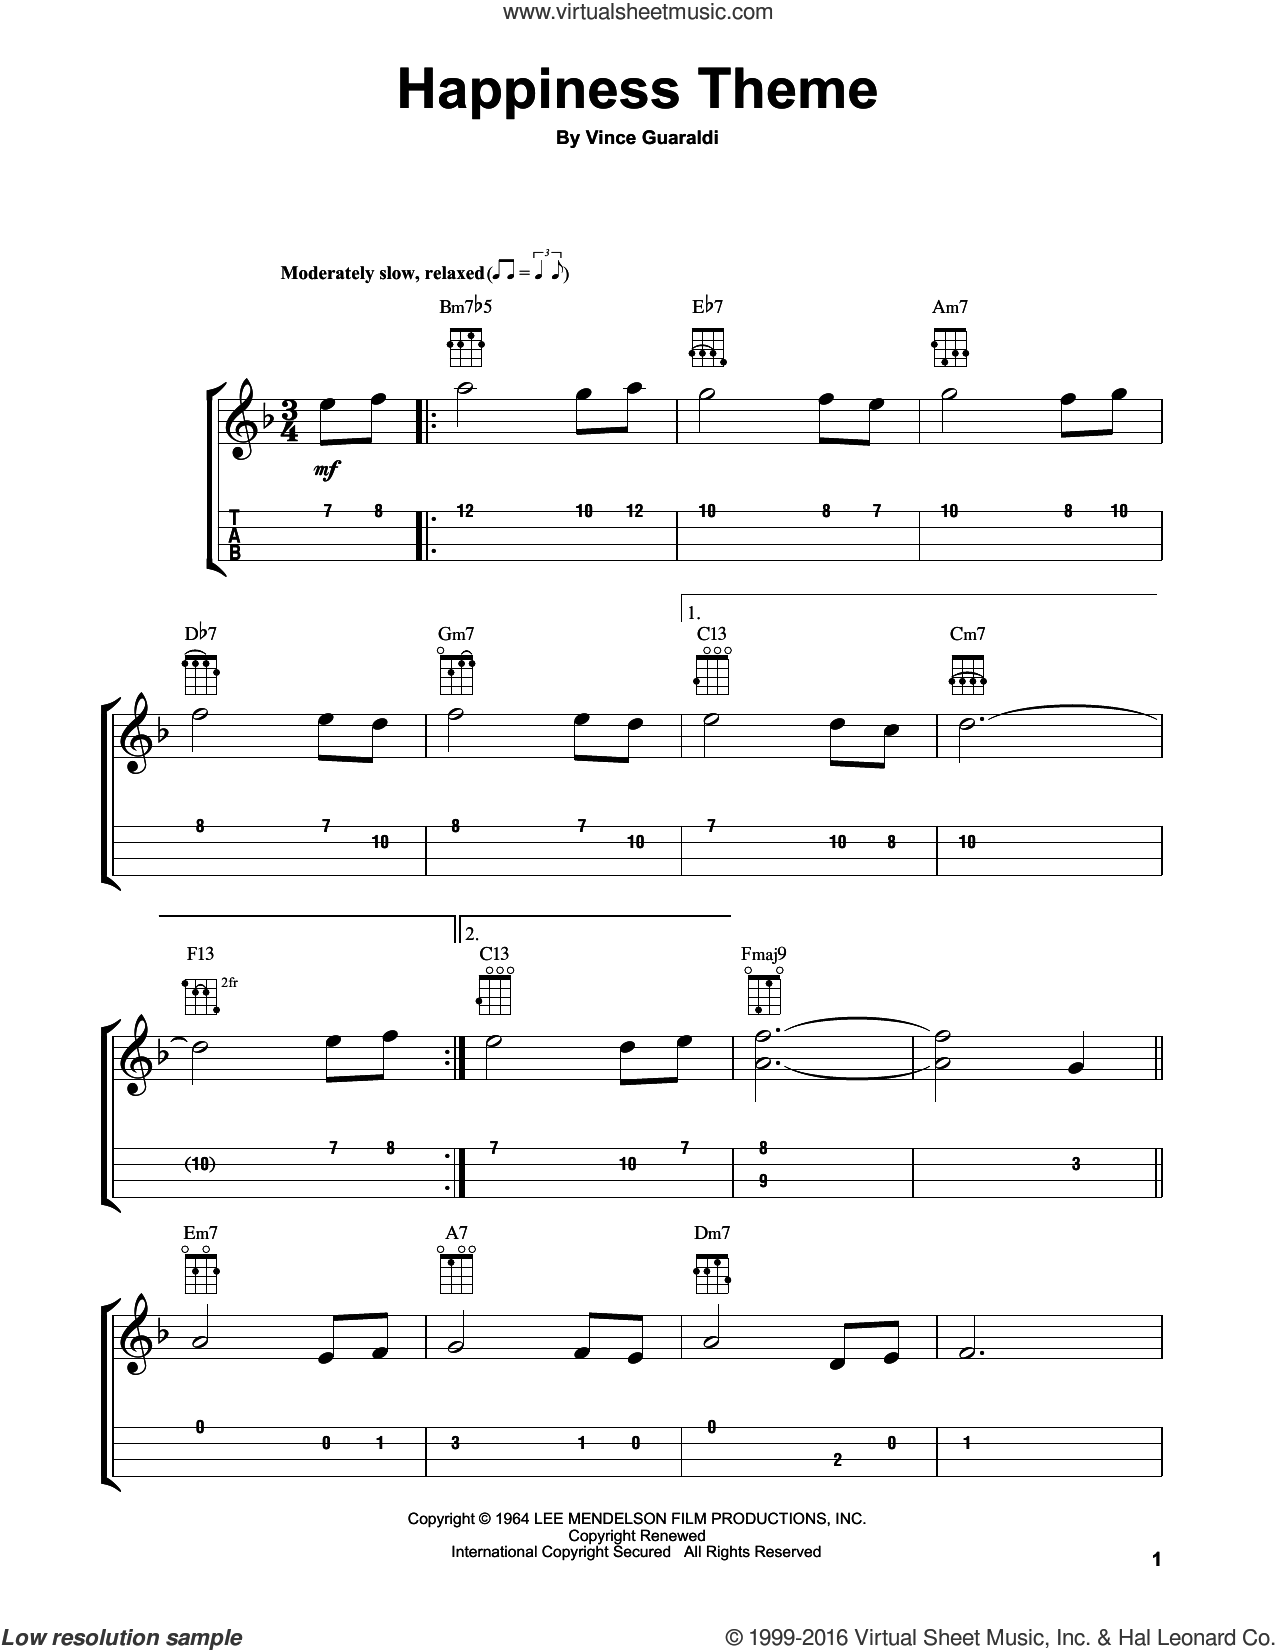 Happiness Theme sheet music for ukulele by Vince Guaraldi, intermediate skill level